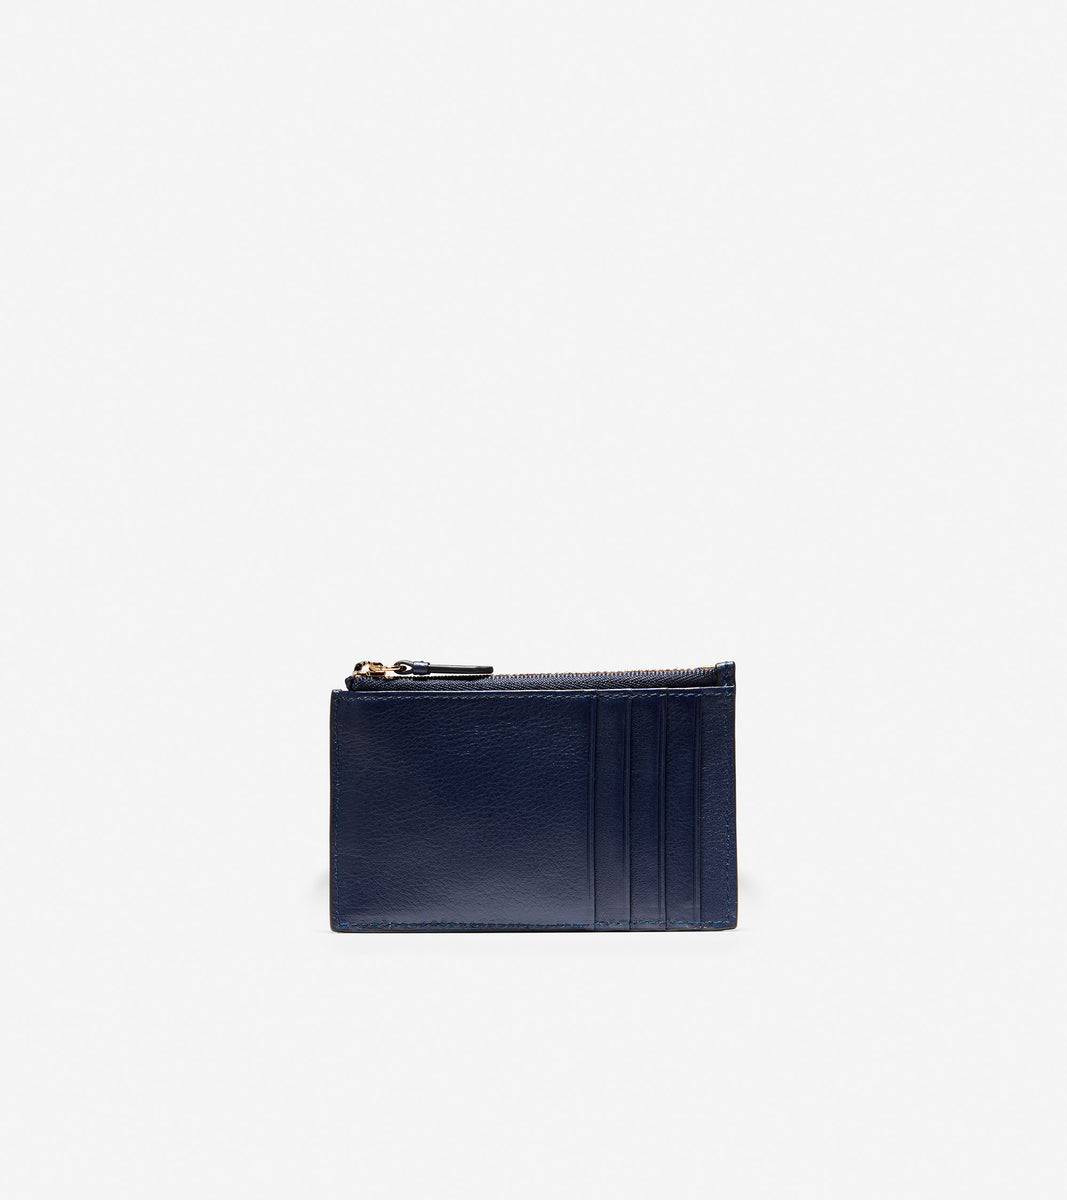 GRANDSERIES Zip Card Case